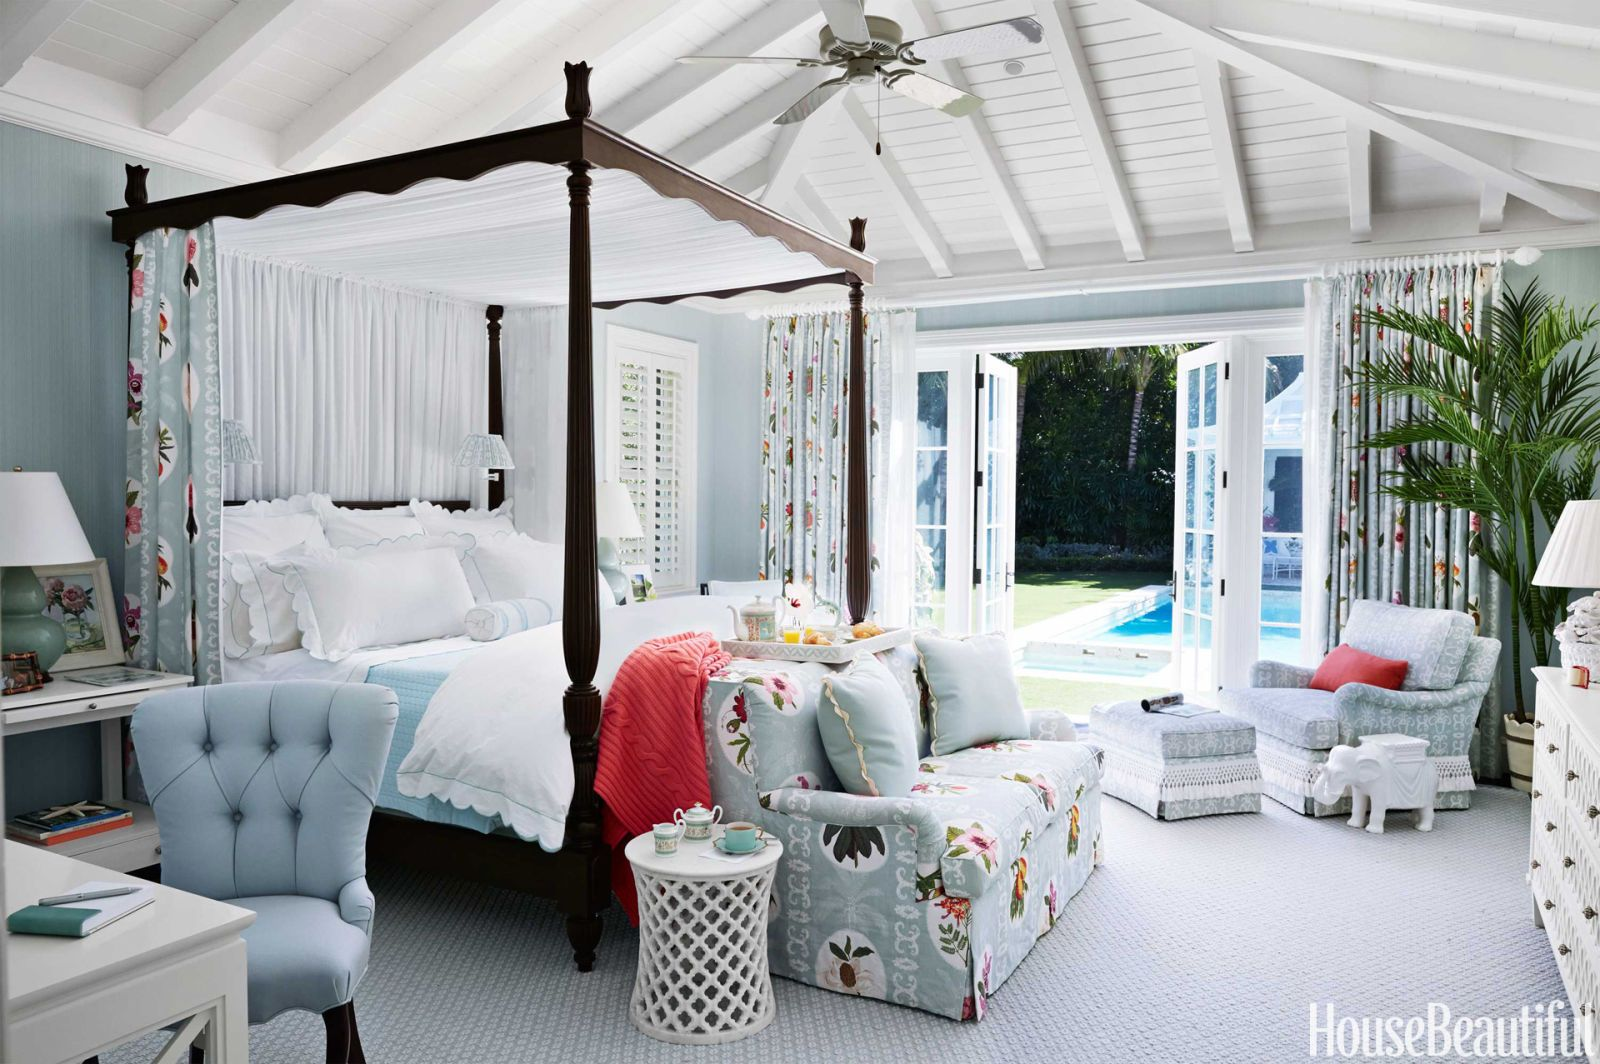 Picture of: 13 Canopy Bed Ideas Best Canopy Bed Designs